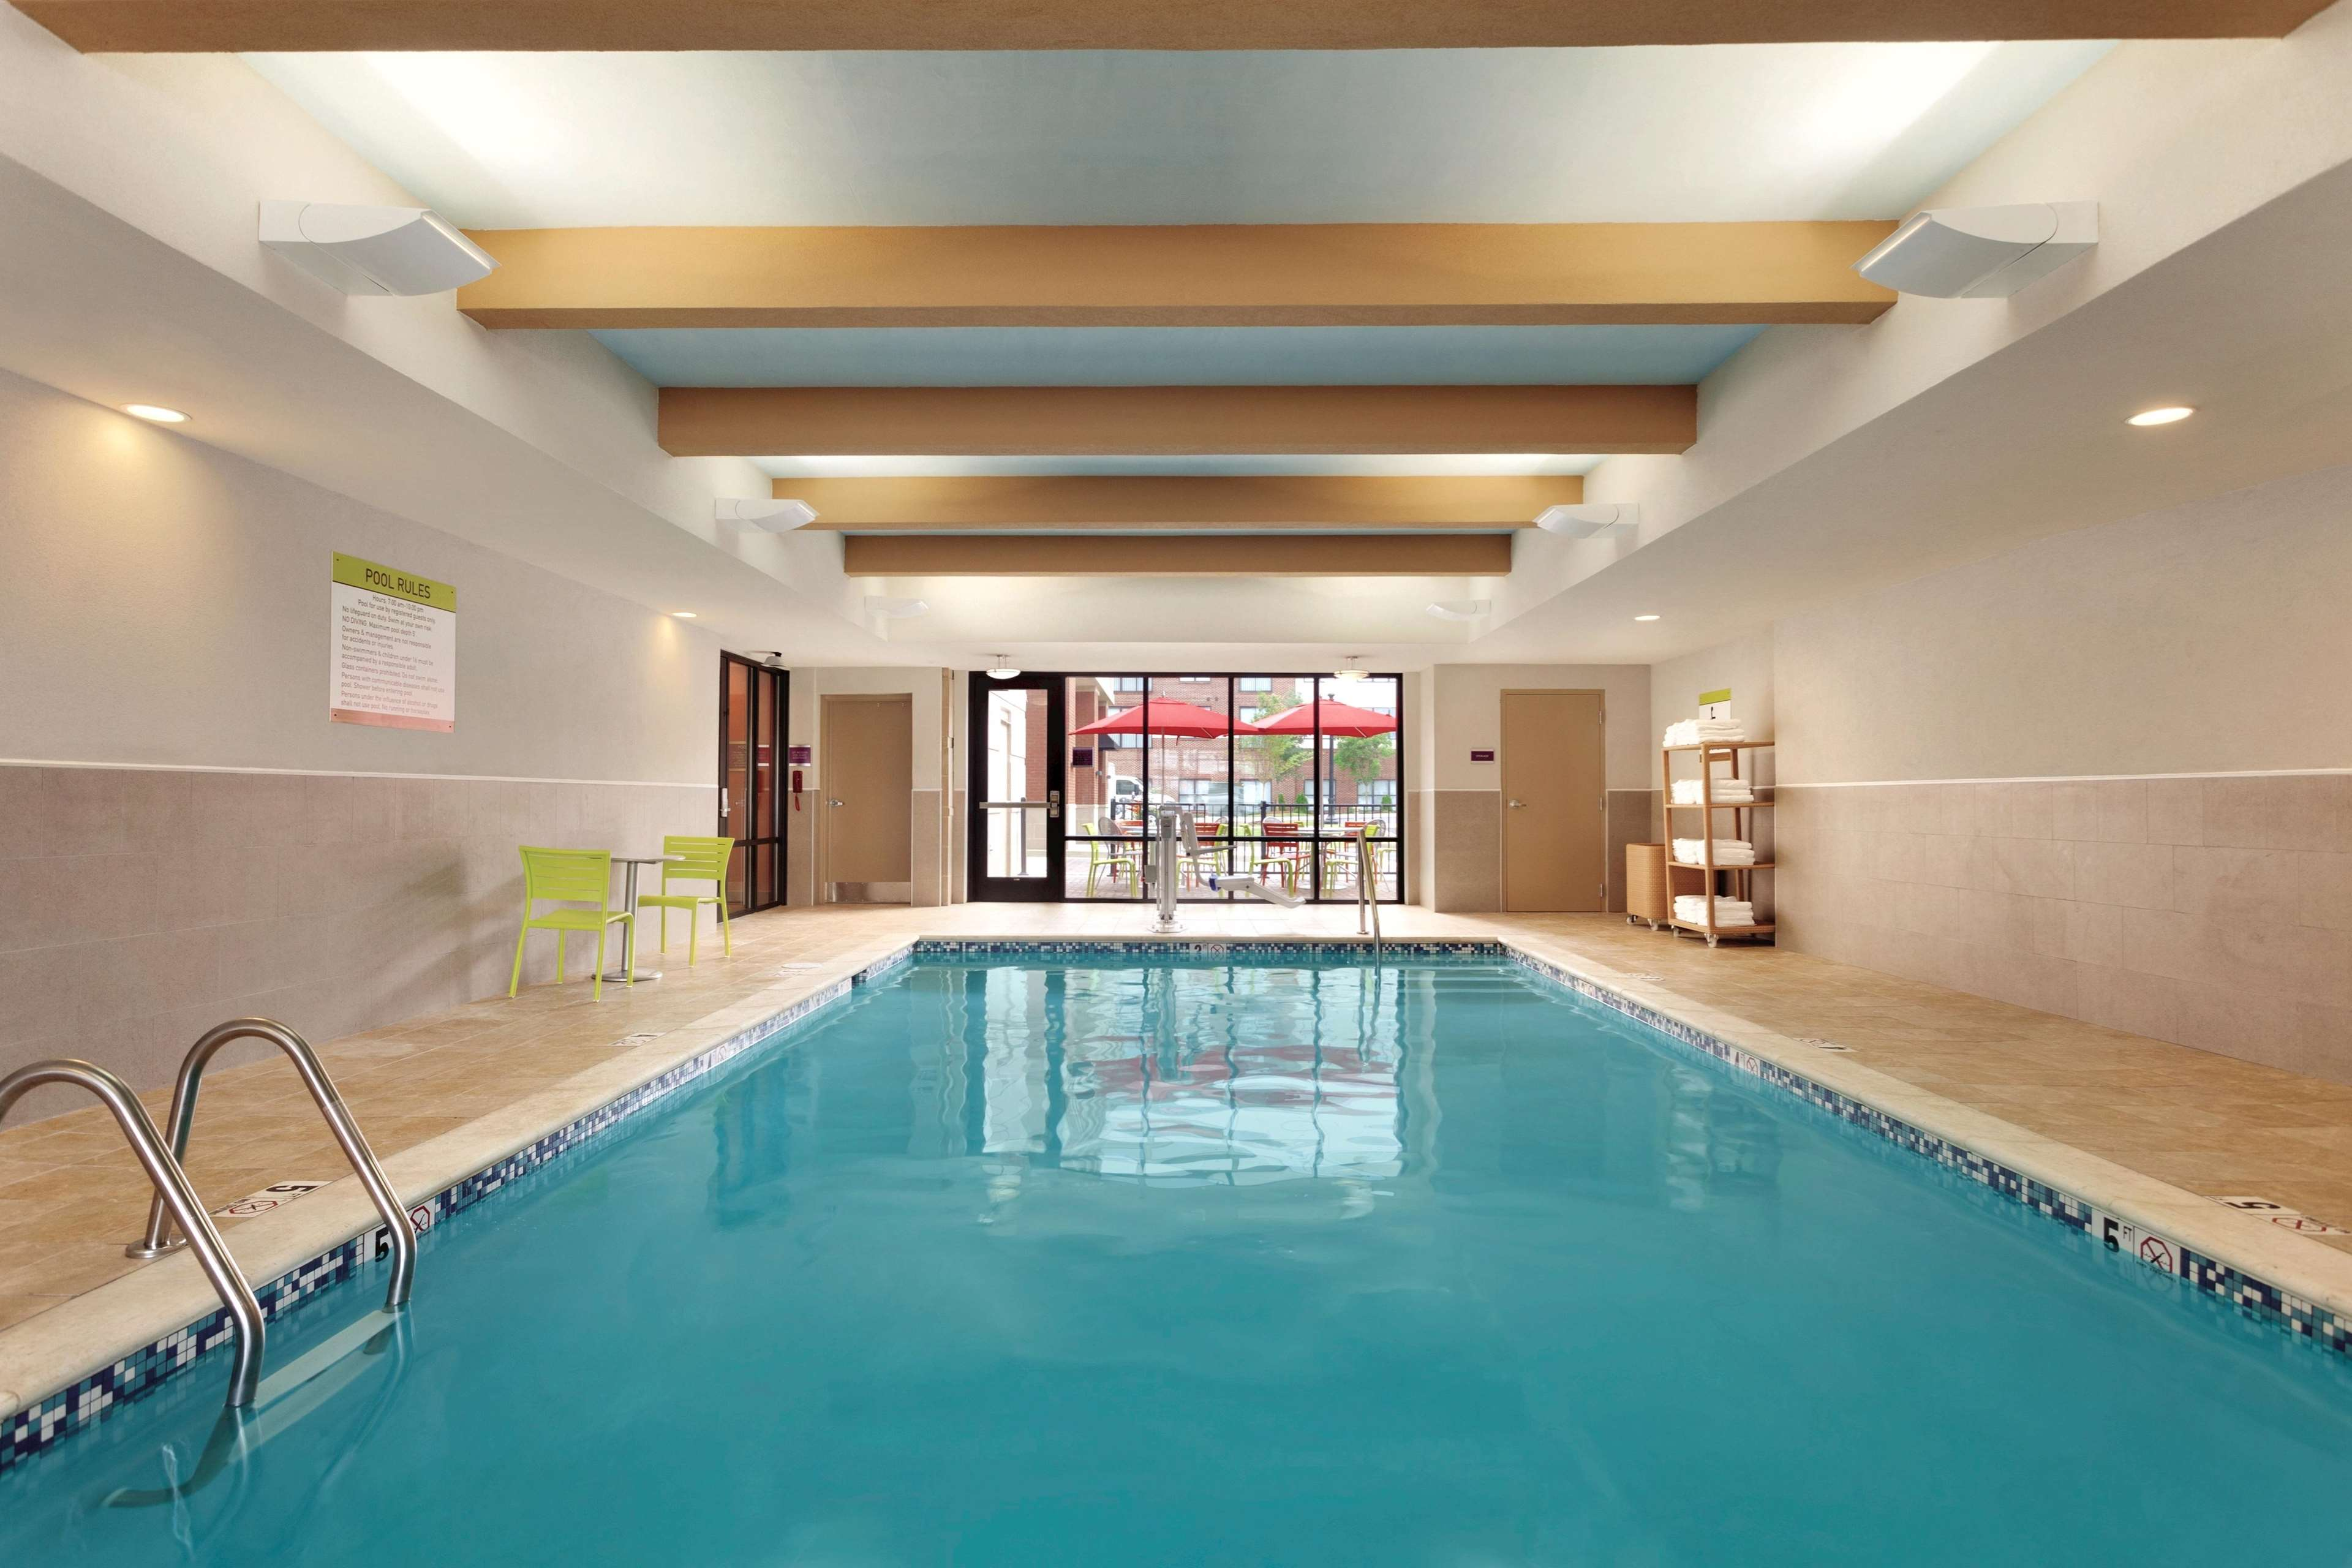 Home2 suites by hilton tuscaloosa downtown university - Regis college swimming pool hours ...